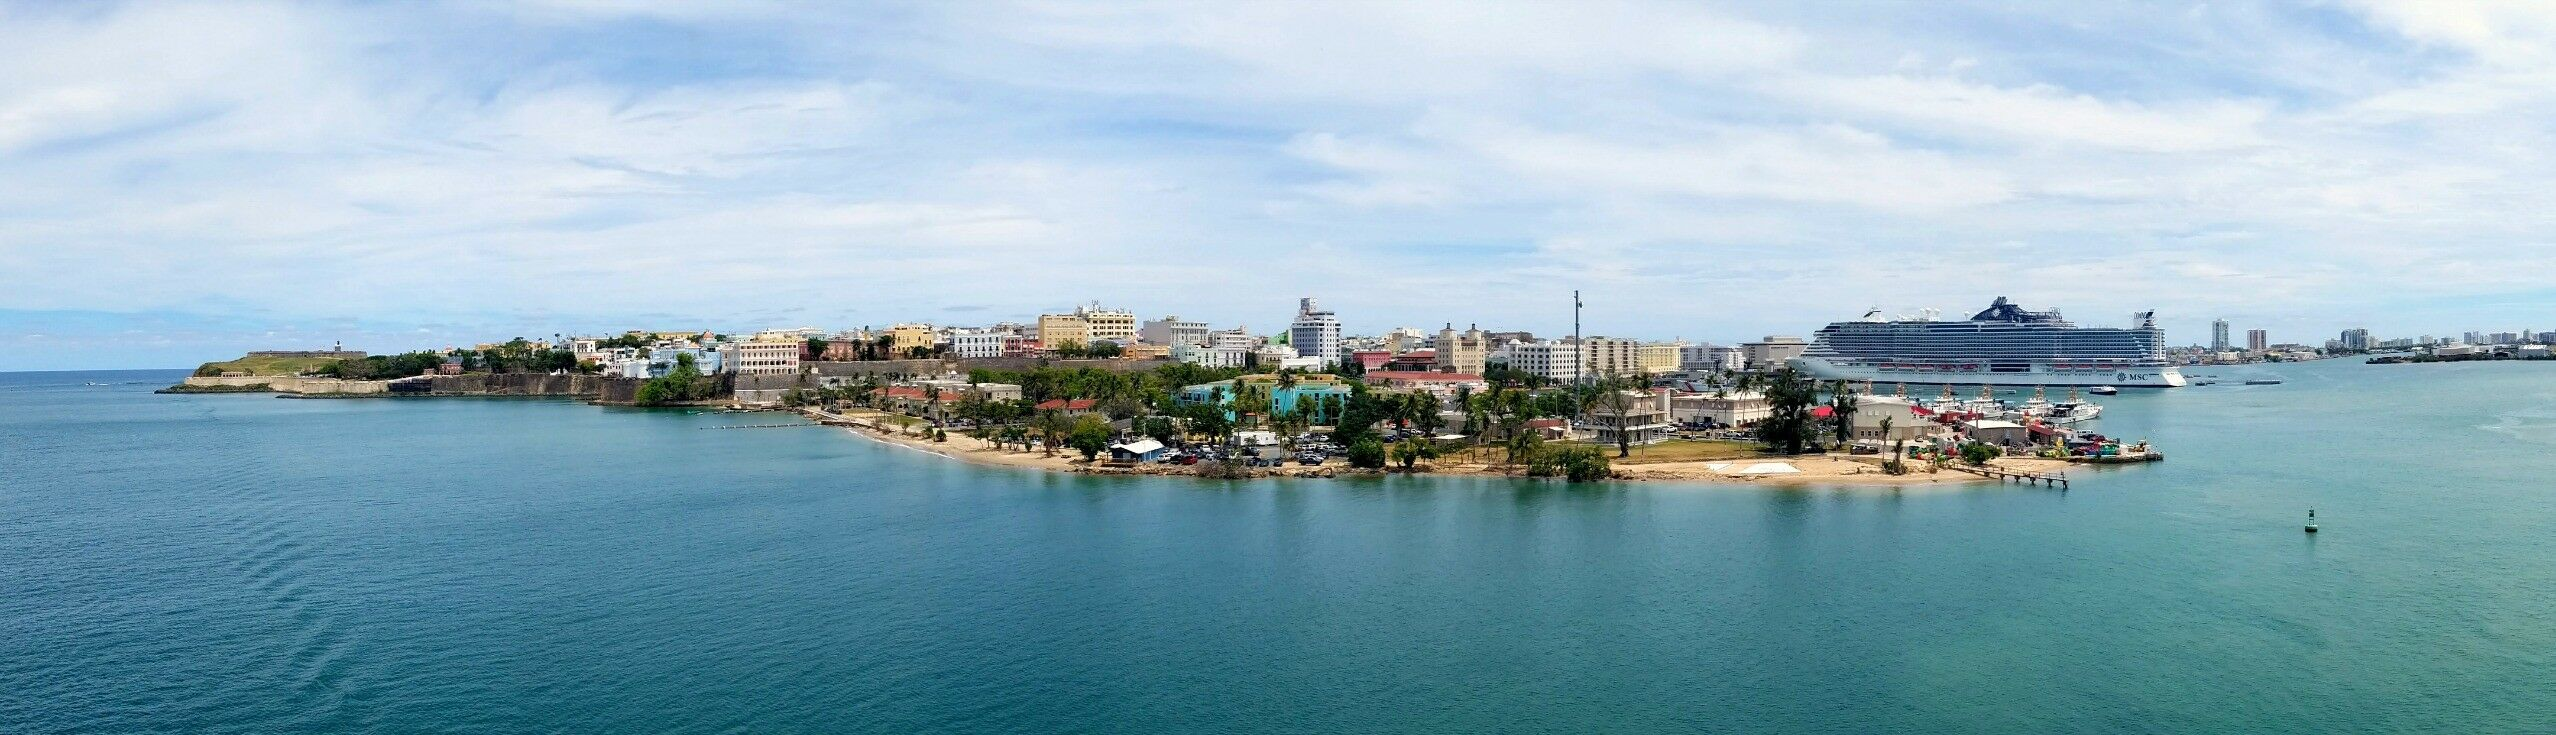 Panarama: San Juan, Puerto Rico | The Good Hearted Woman